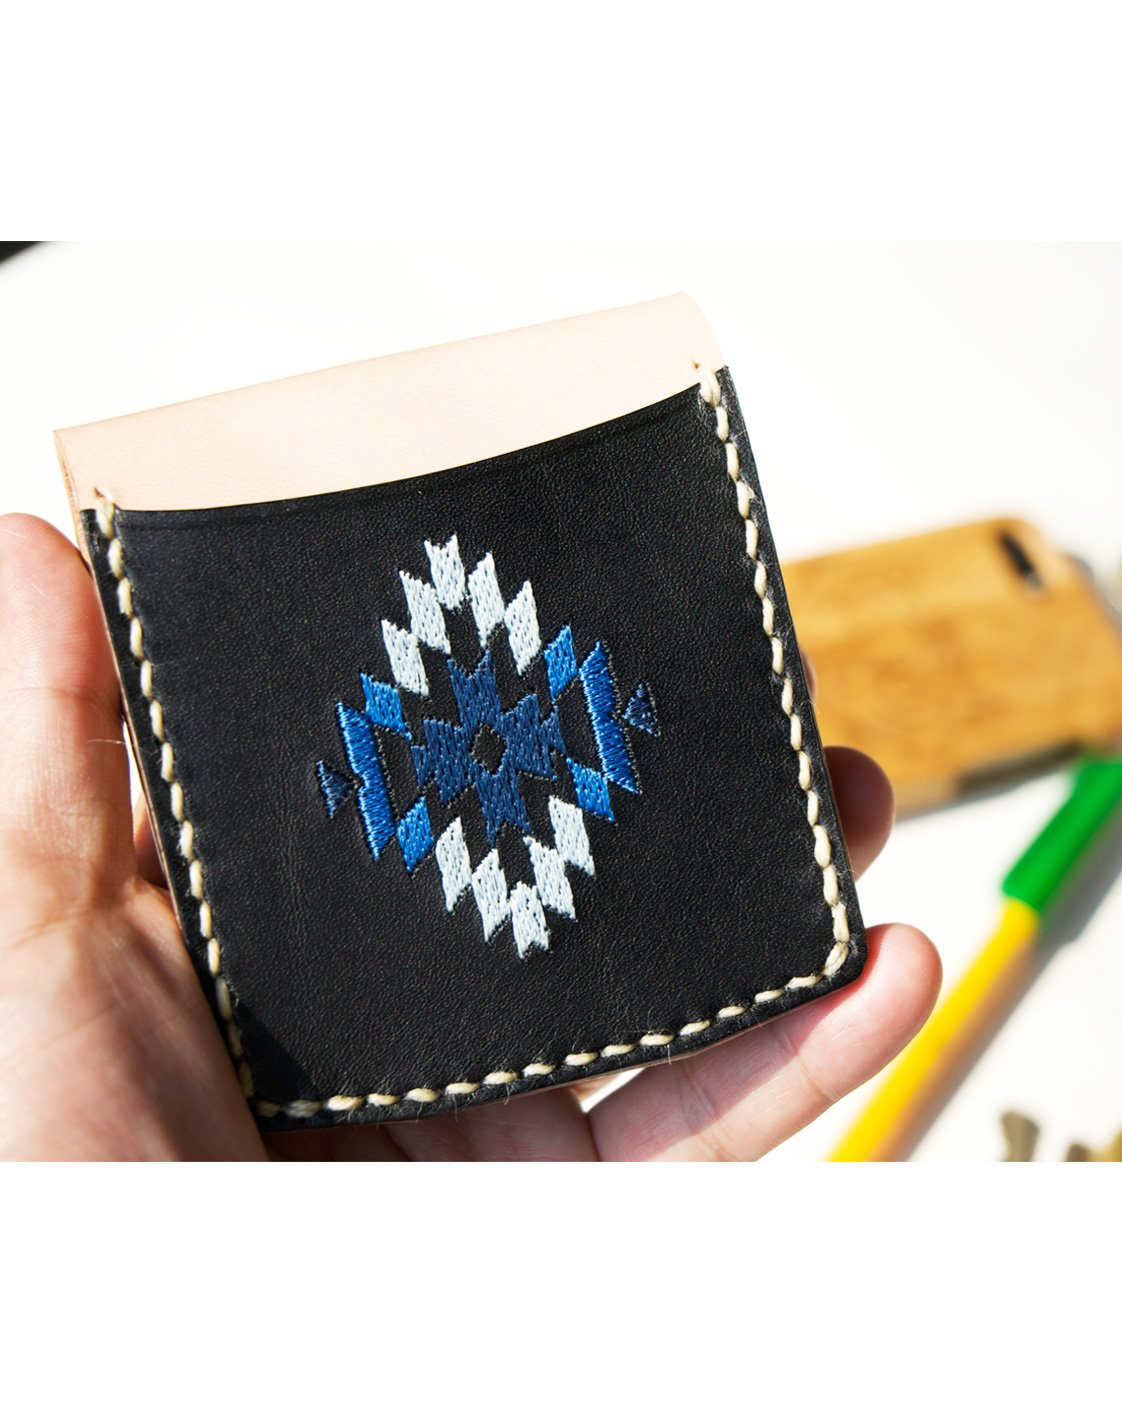 <img class='new_mark_img1' src='https://img.shop-pro.jp/img/new/icons50.gif' style='border:none;display:inline;margin:0px;padding:0px;width:auto;' />ミニマル 刺繍ウォレットBLACKxNATURAL / IVORYステッチ